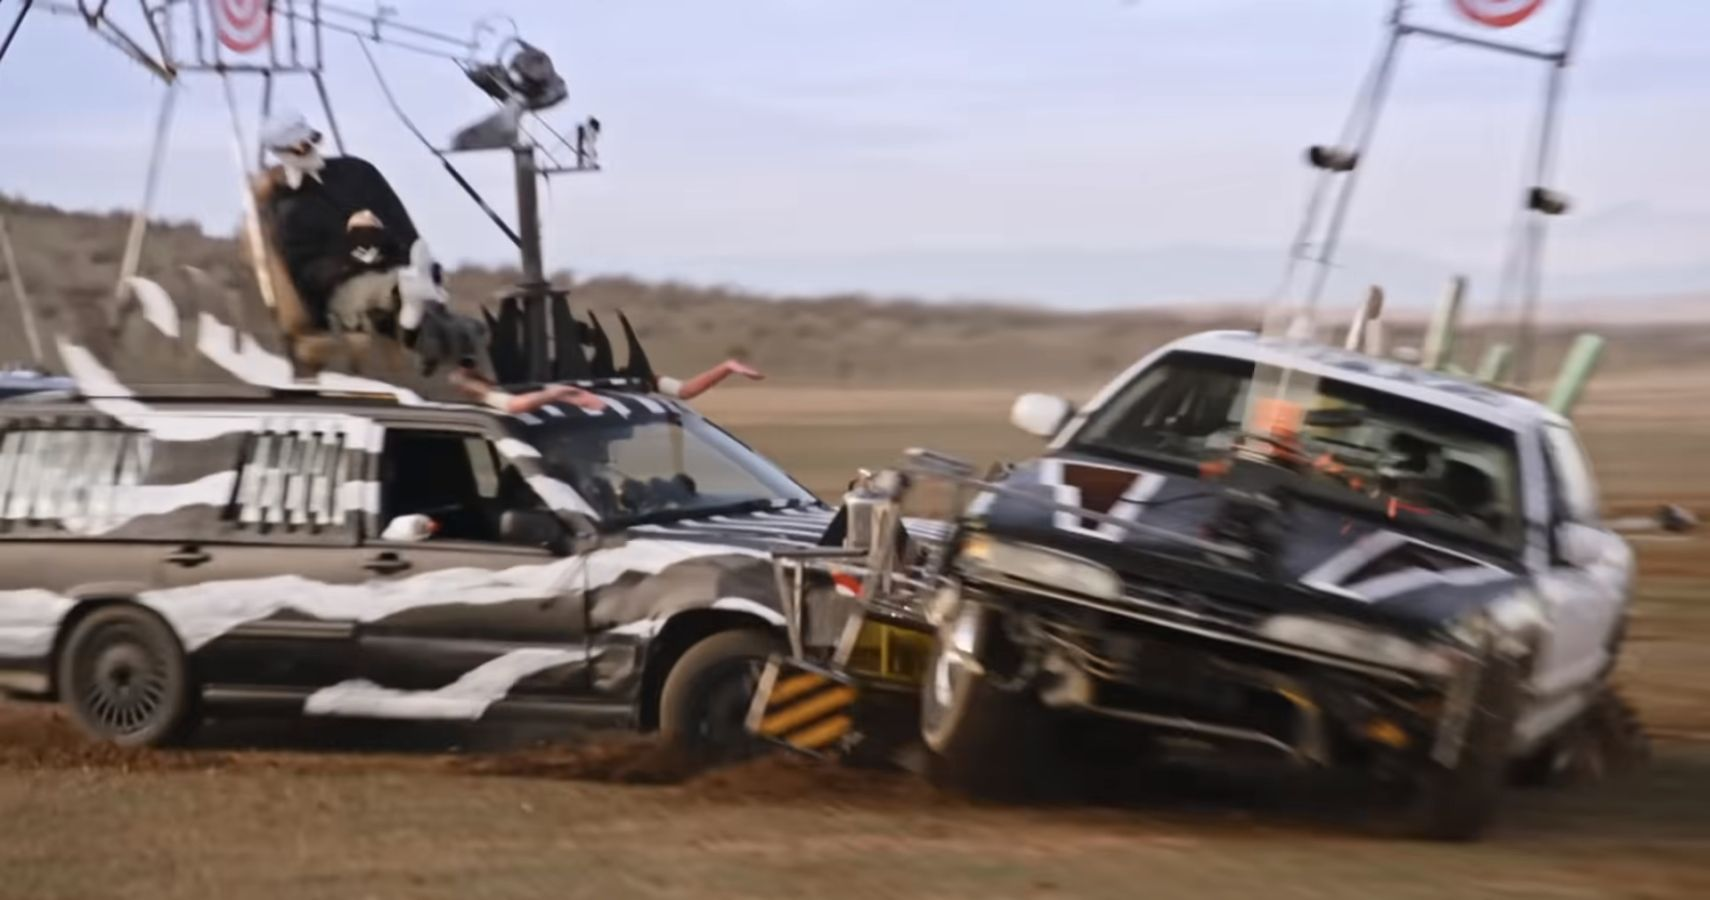 MythBusters' Adam Savage Staged A Battle Royale Between Mad Max-Inspired Cars